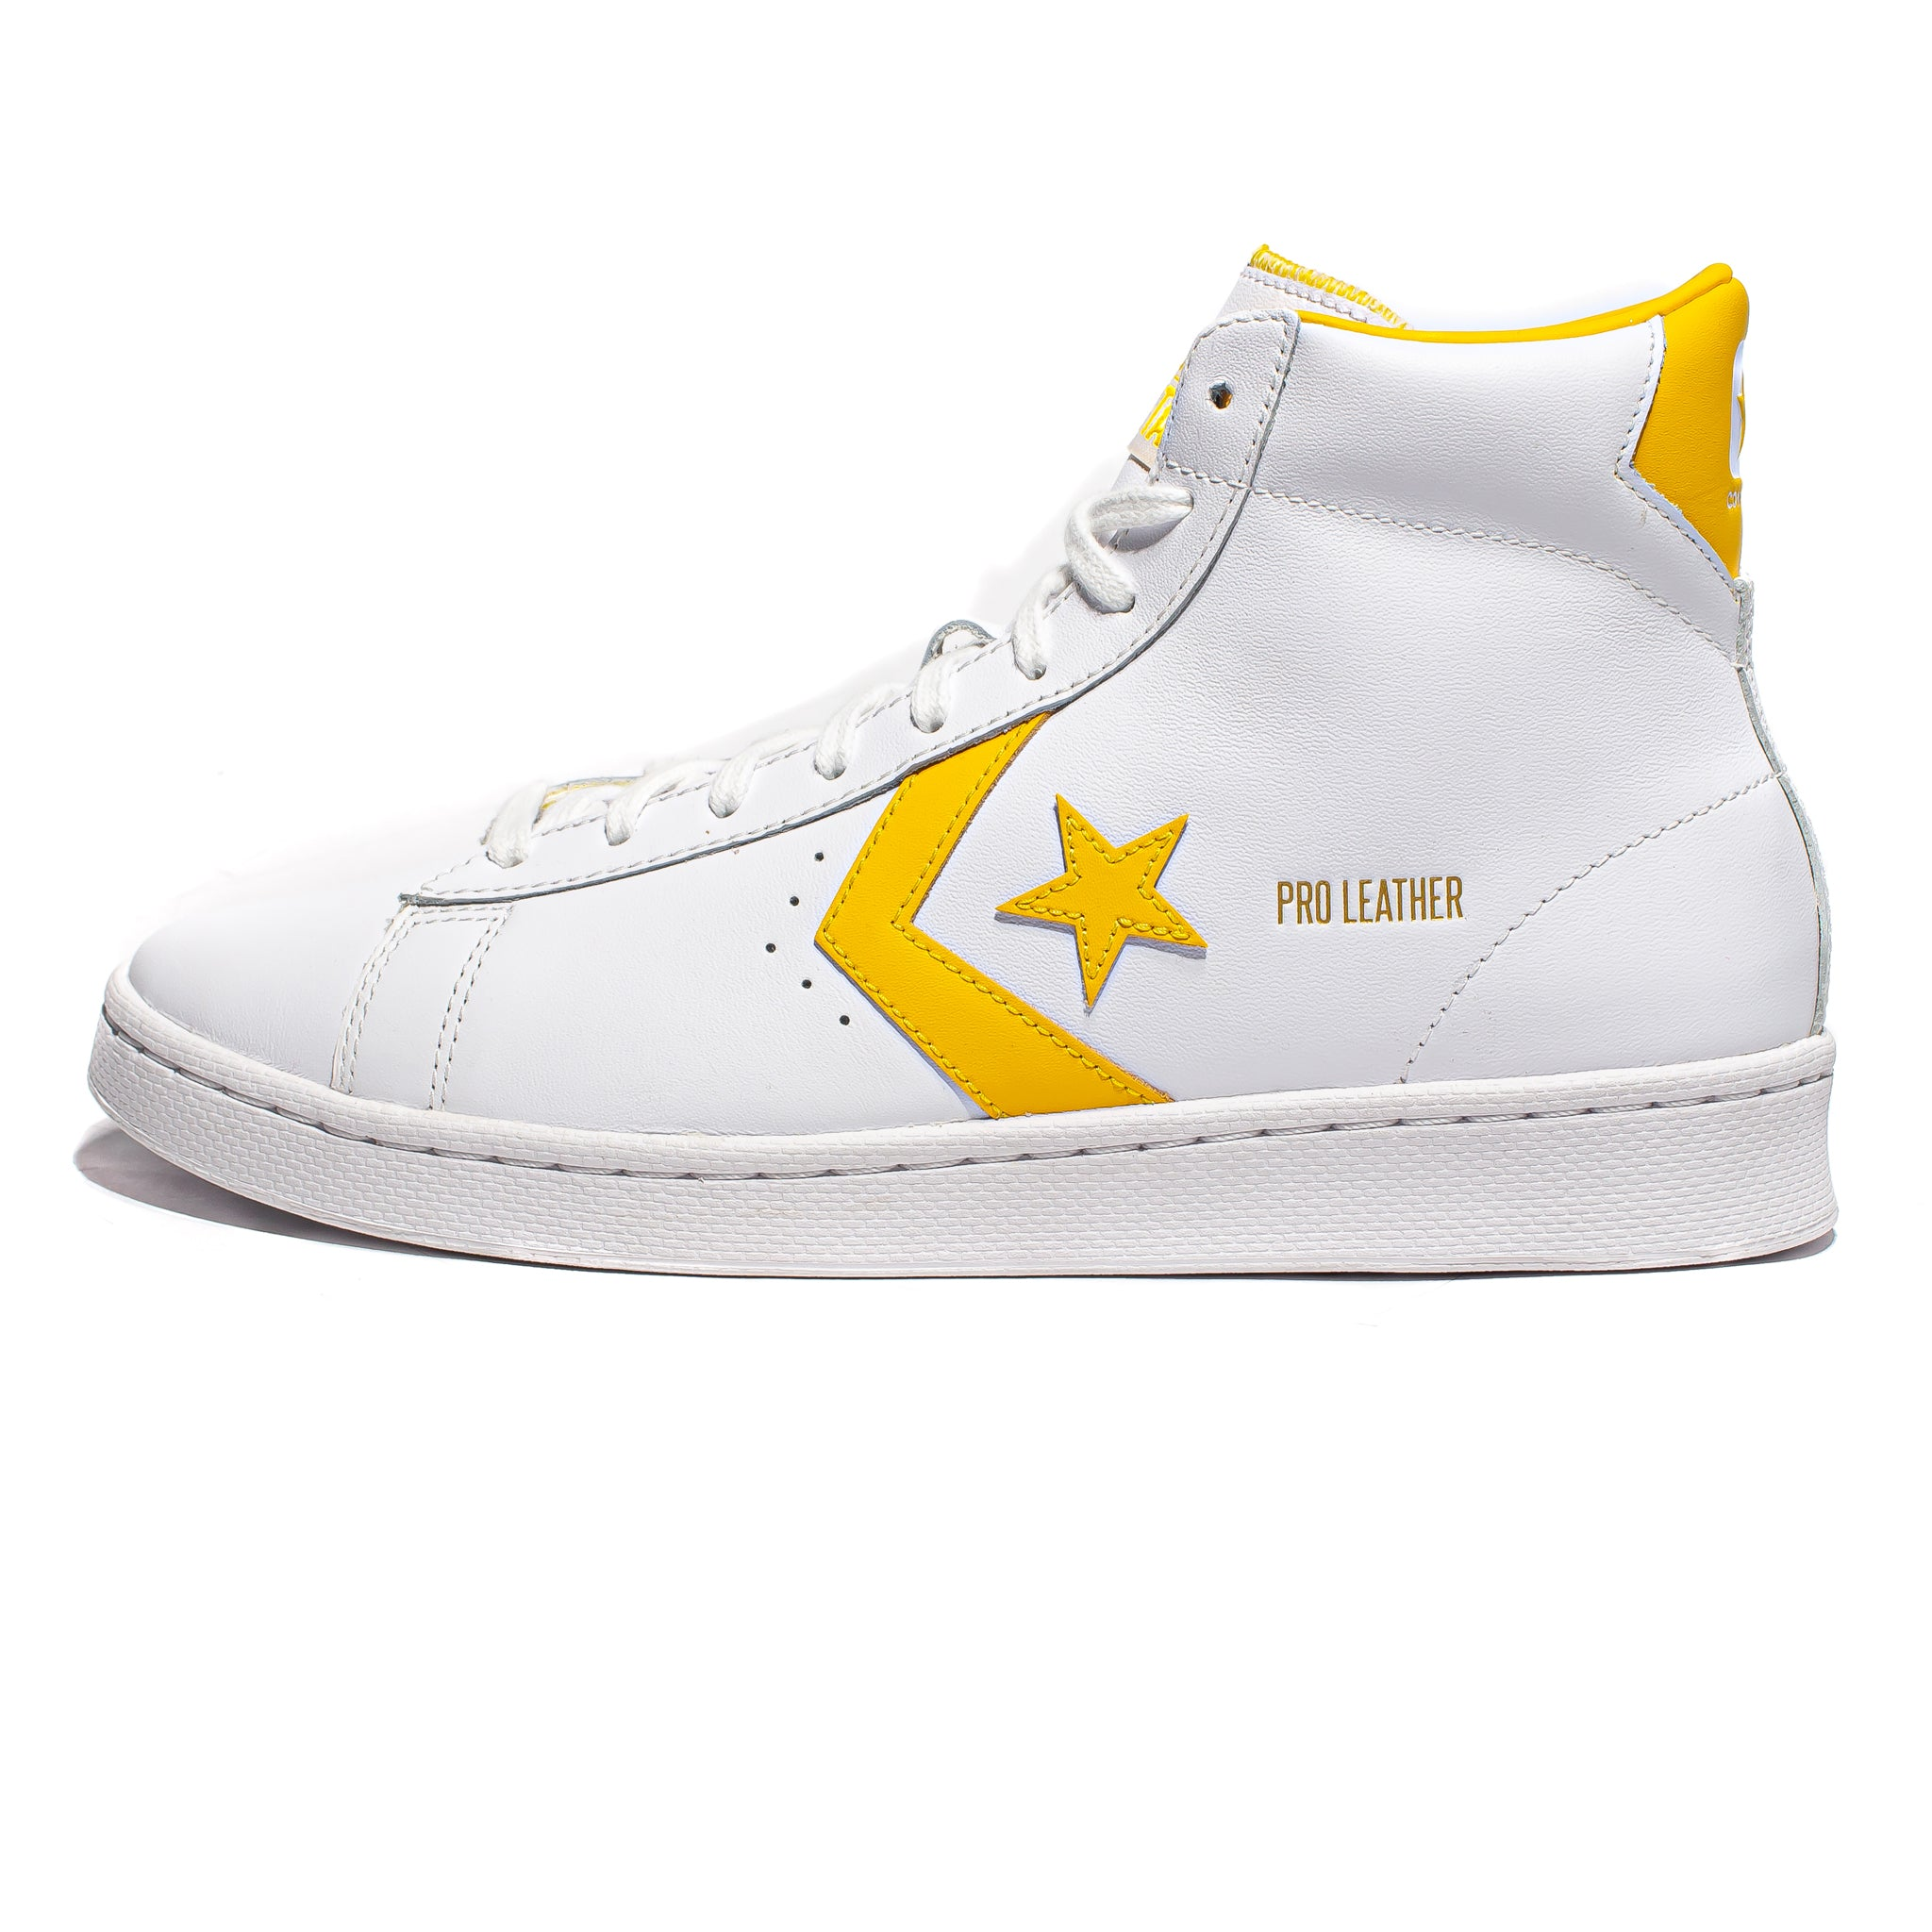 Converse Pro Leather Mid - White/Amarillo